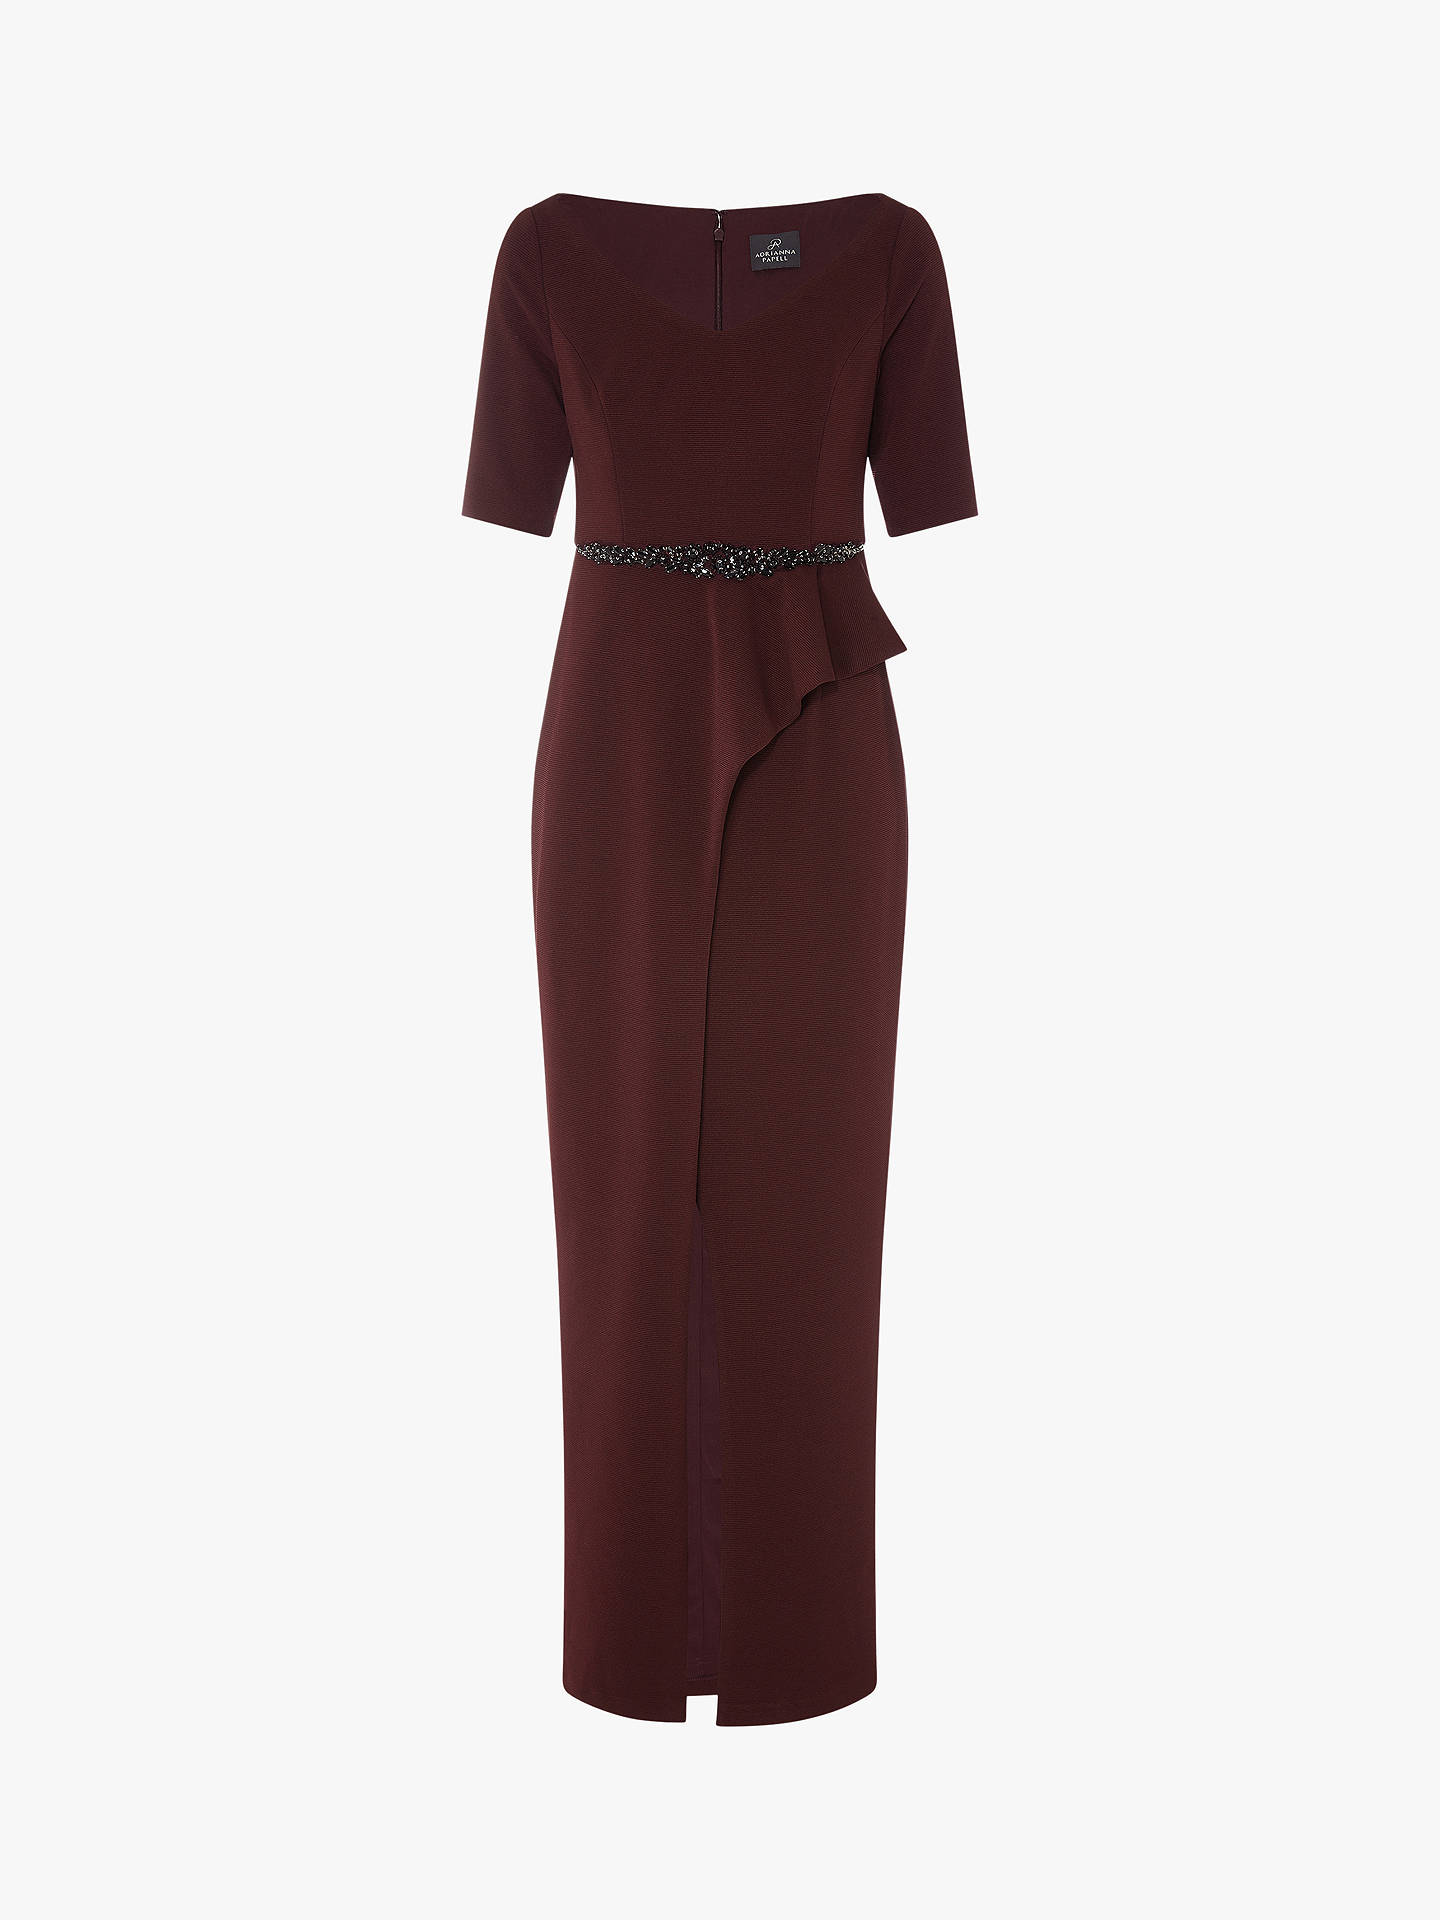 BuyAdrianna Papell Long Knit Embellished Waist Dress, Blackberry Wine, 10 Online at johnlewis.com